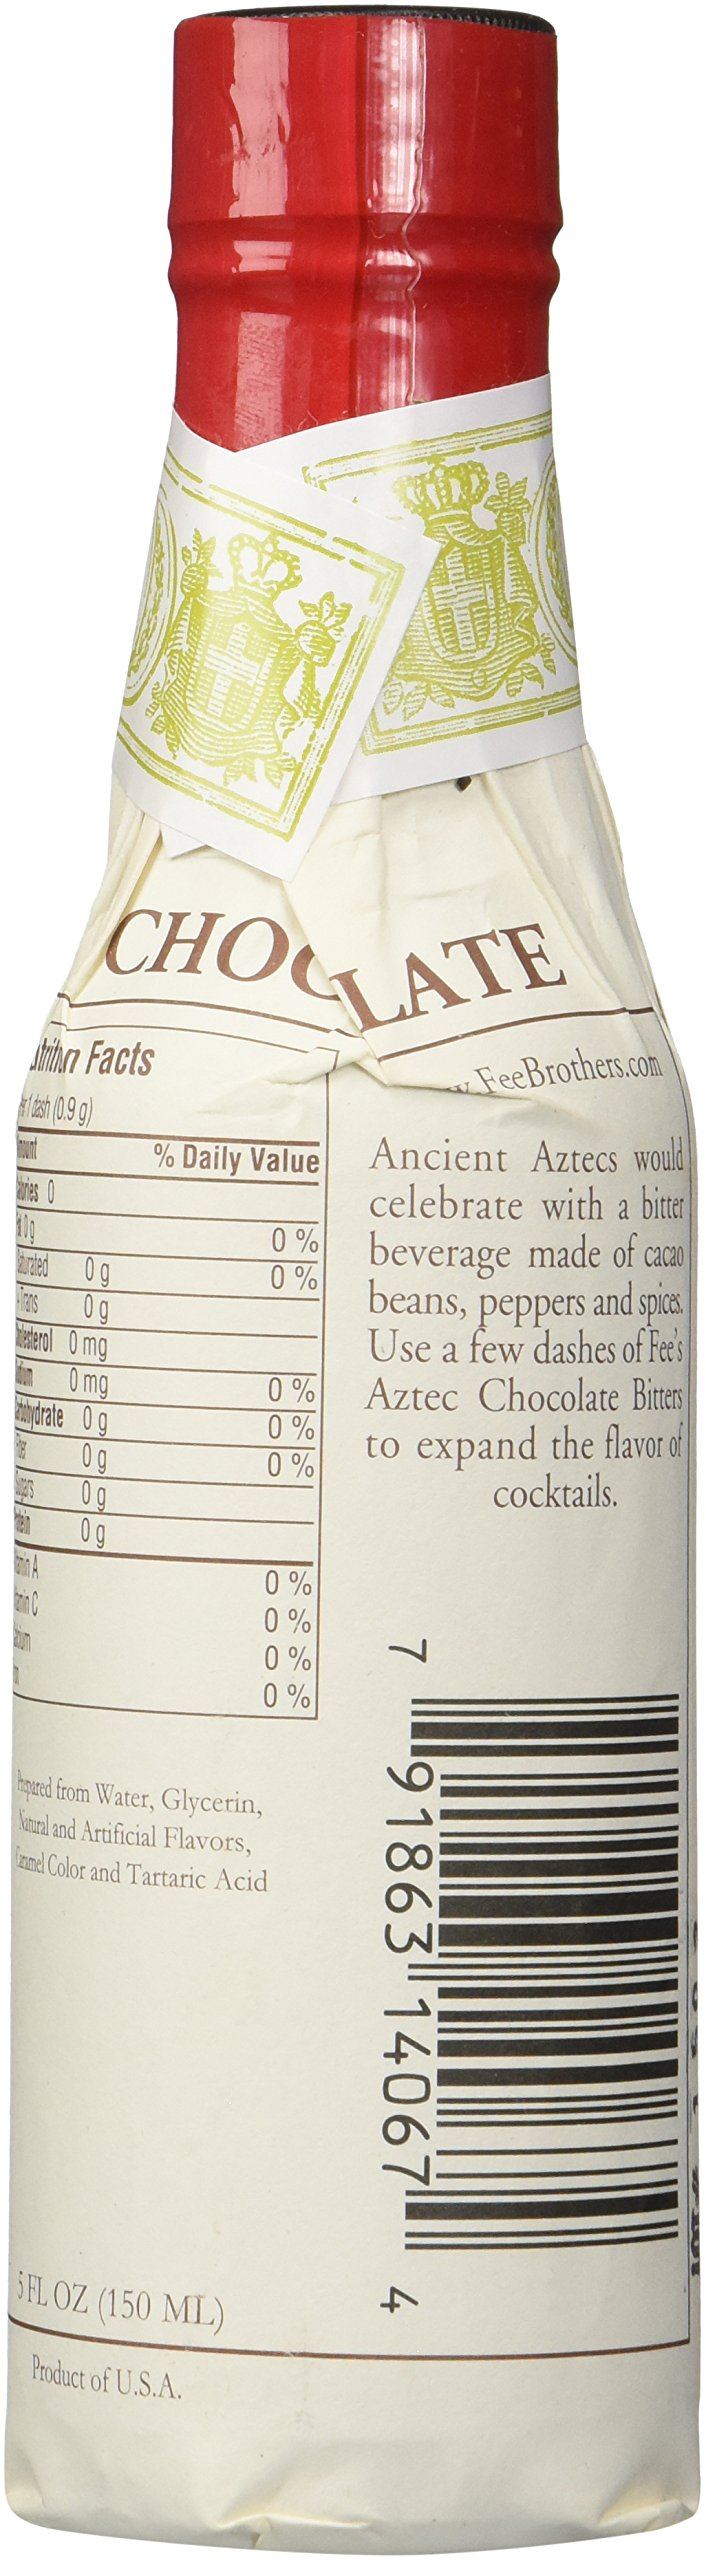 Fee Brothers Aztec Chocolate Cocktail Bitters 5oz by Fee Brothers (Image #2)